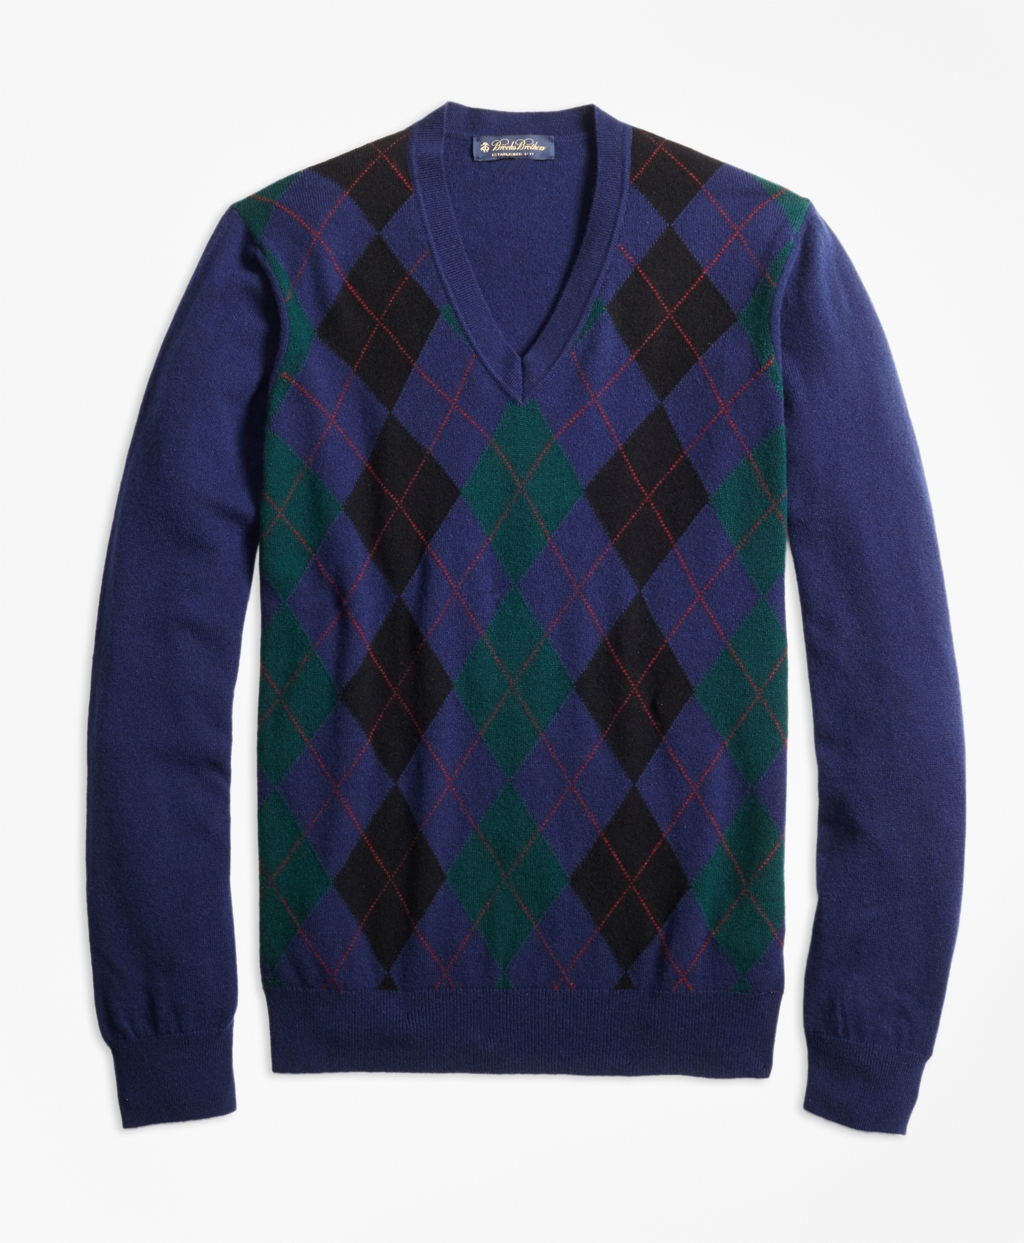 1920s Mens Sweaters, Pullovers, Cardigans Brooks Brothers Mens Cashmere Argyle V-Neck Sweater $598.00 AT vintagedancer.com